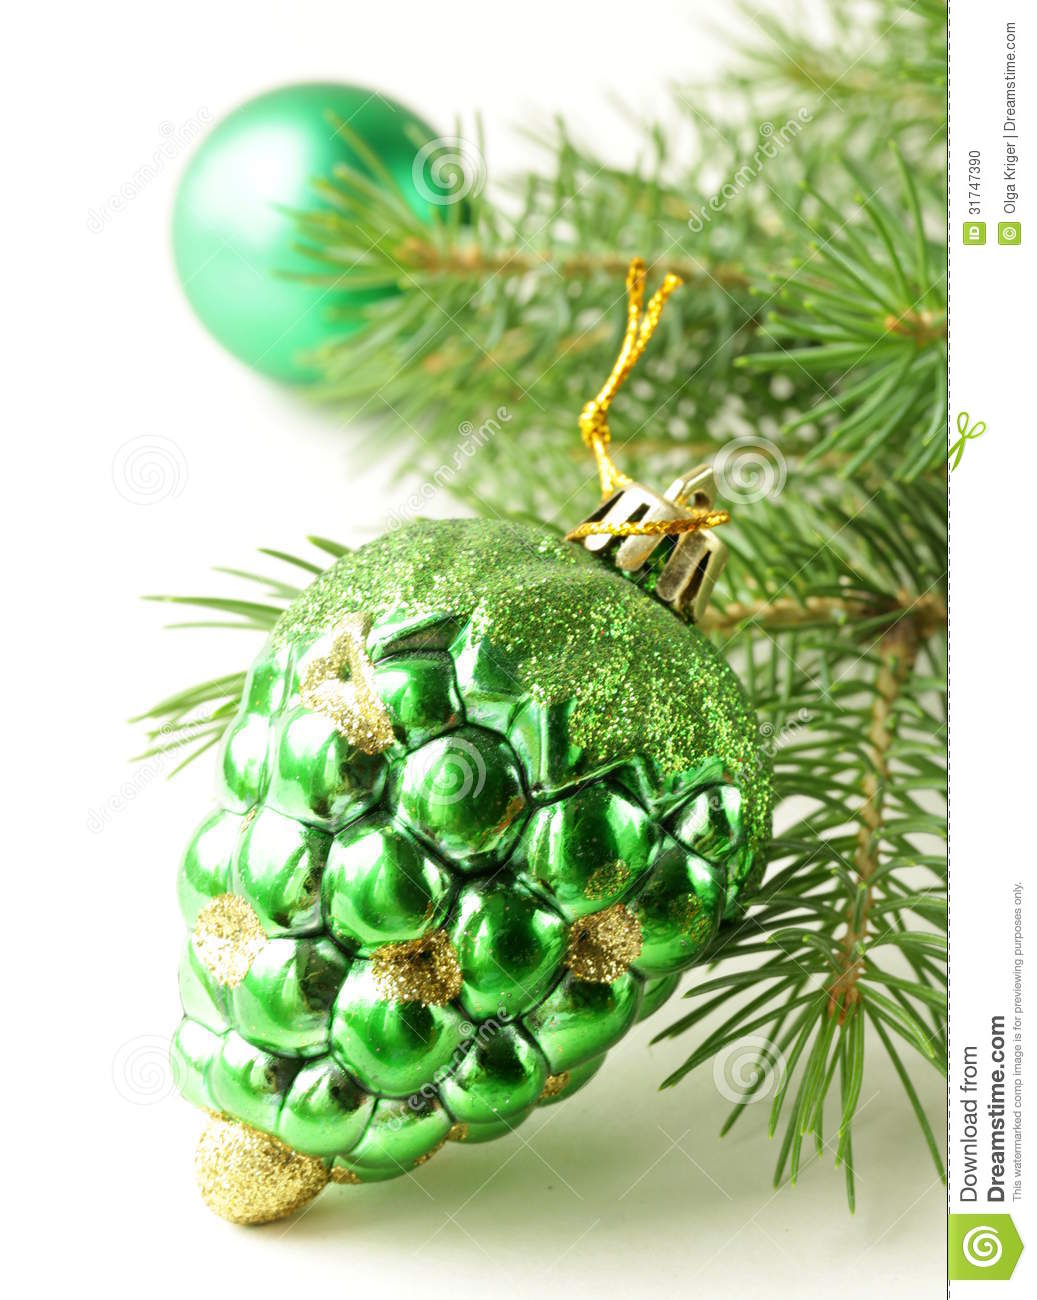 Christmas Green Fir Tree Branches With Decorations Stock Photo - Image of background, branch ...